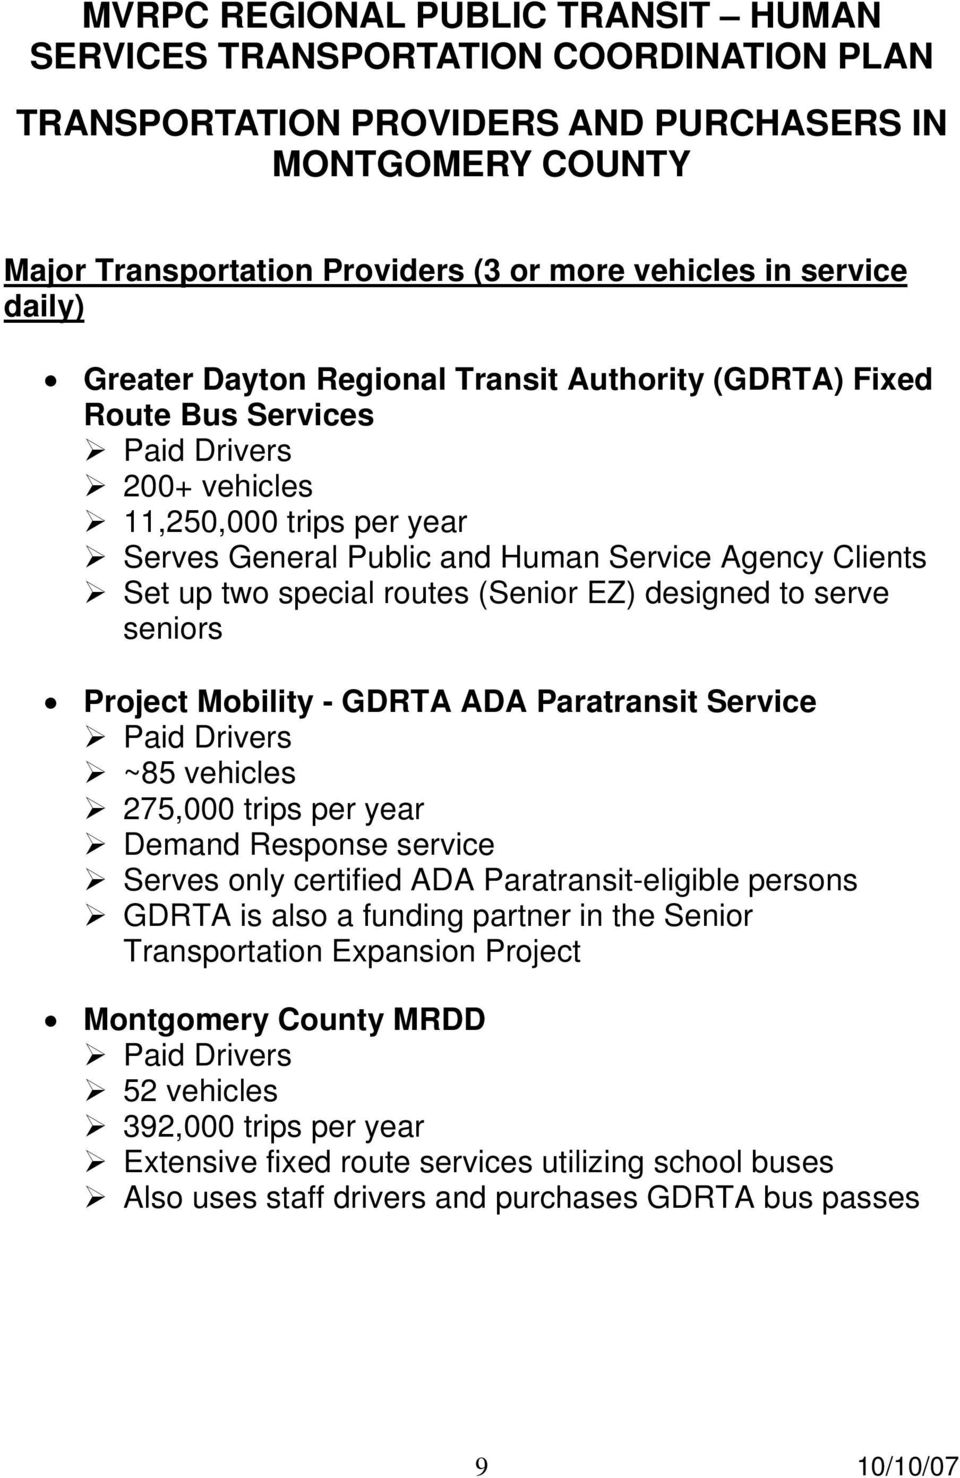 Paratransit Service ~85 vehicles 275,000 trips per year Demand Response service Serves only certified ADA Paratransit-eligible persons GDRTA is also a funding partner in the Senior